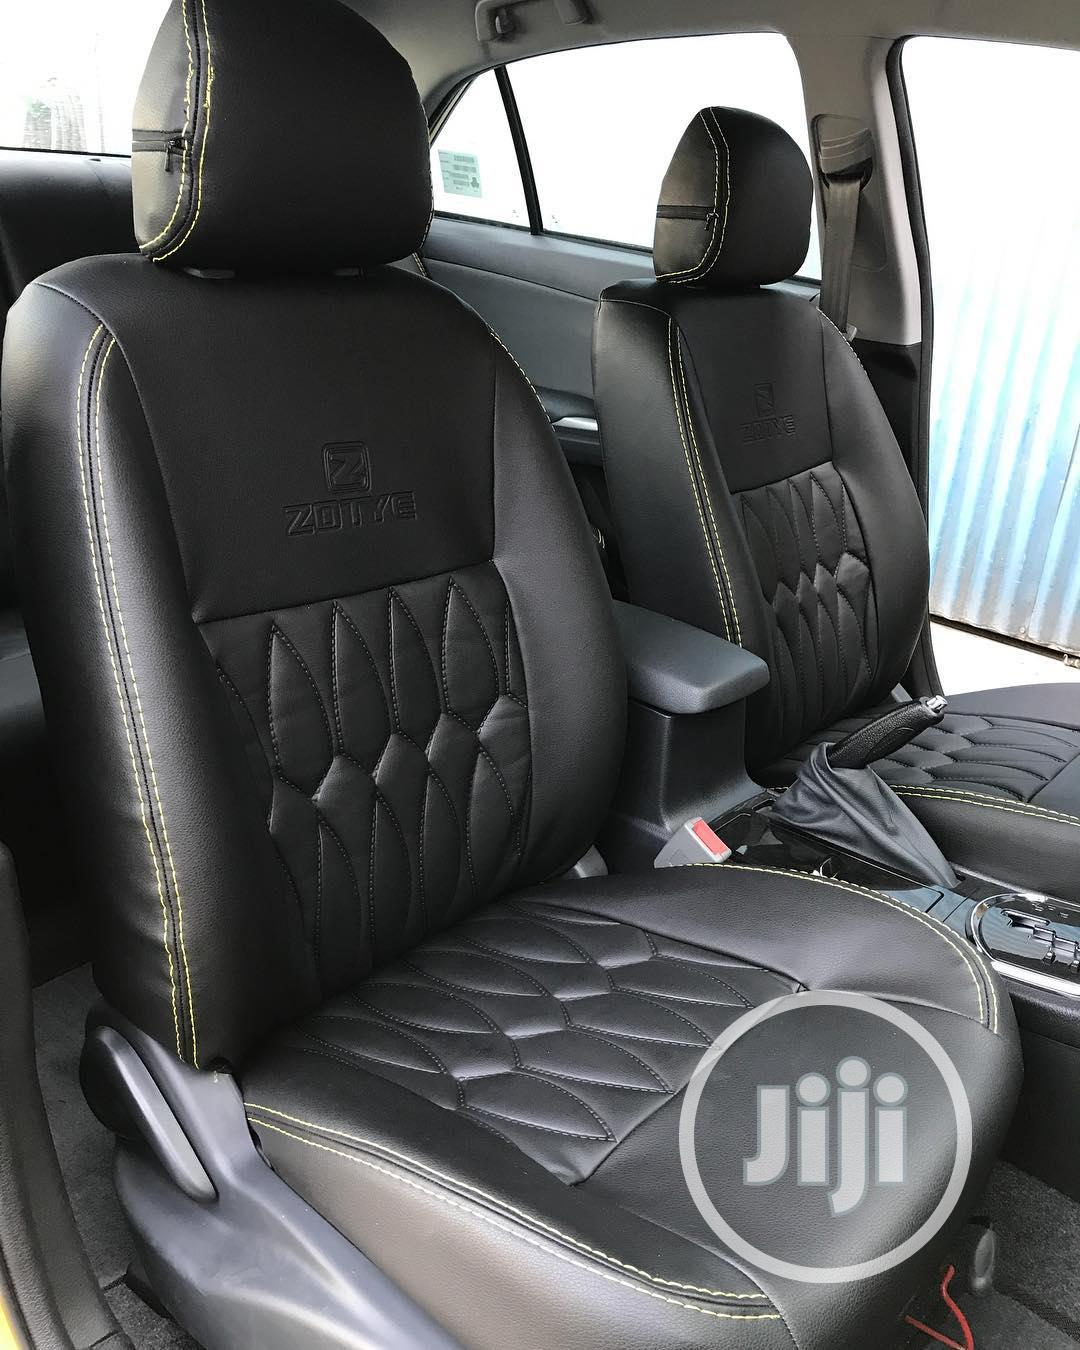 Car Seats Interior   Vehicle Parts & Accessories for sale in Ikeja, Lagos State, Nigeria